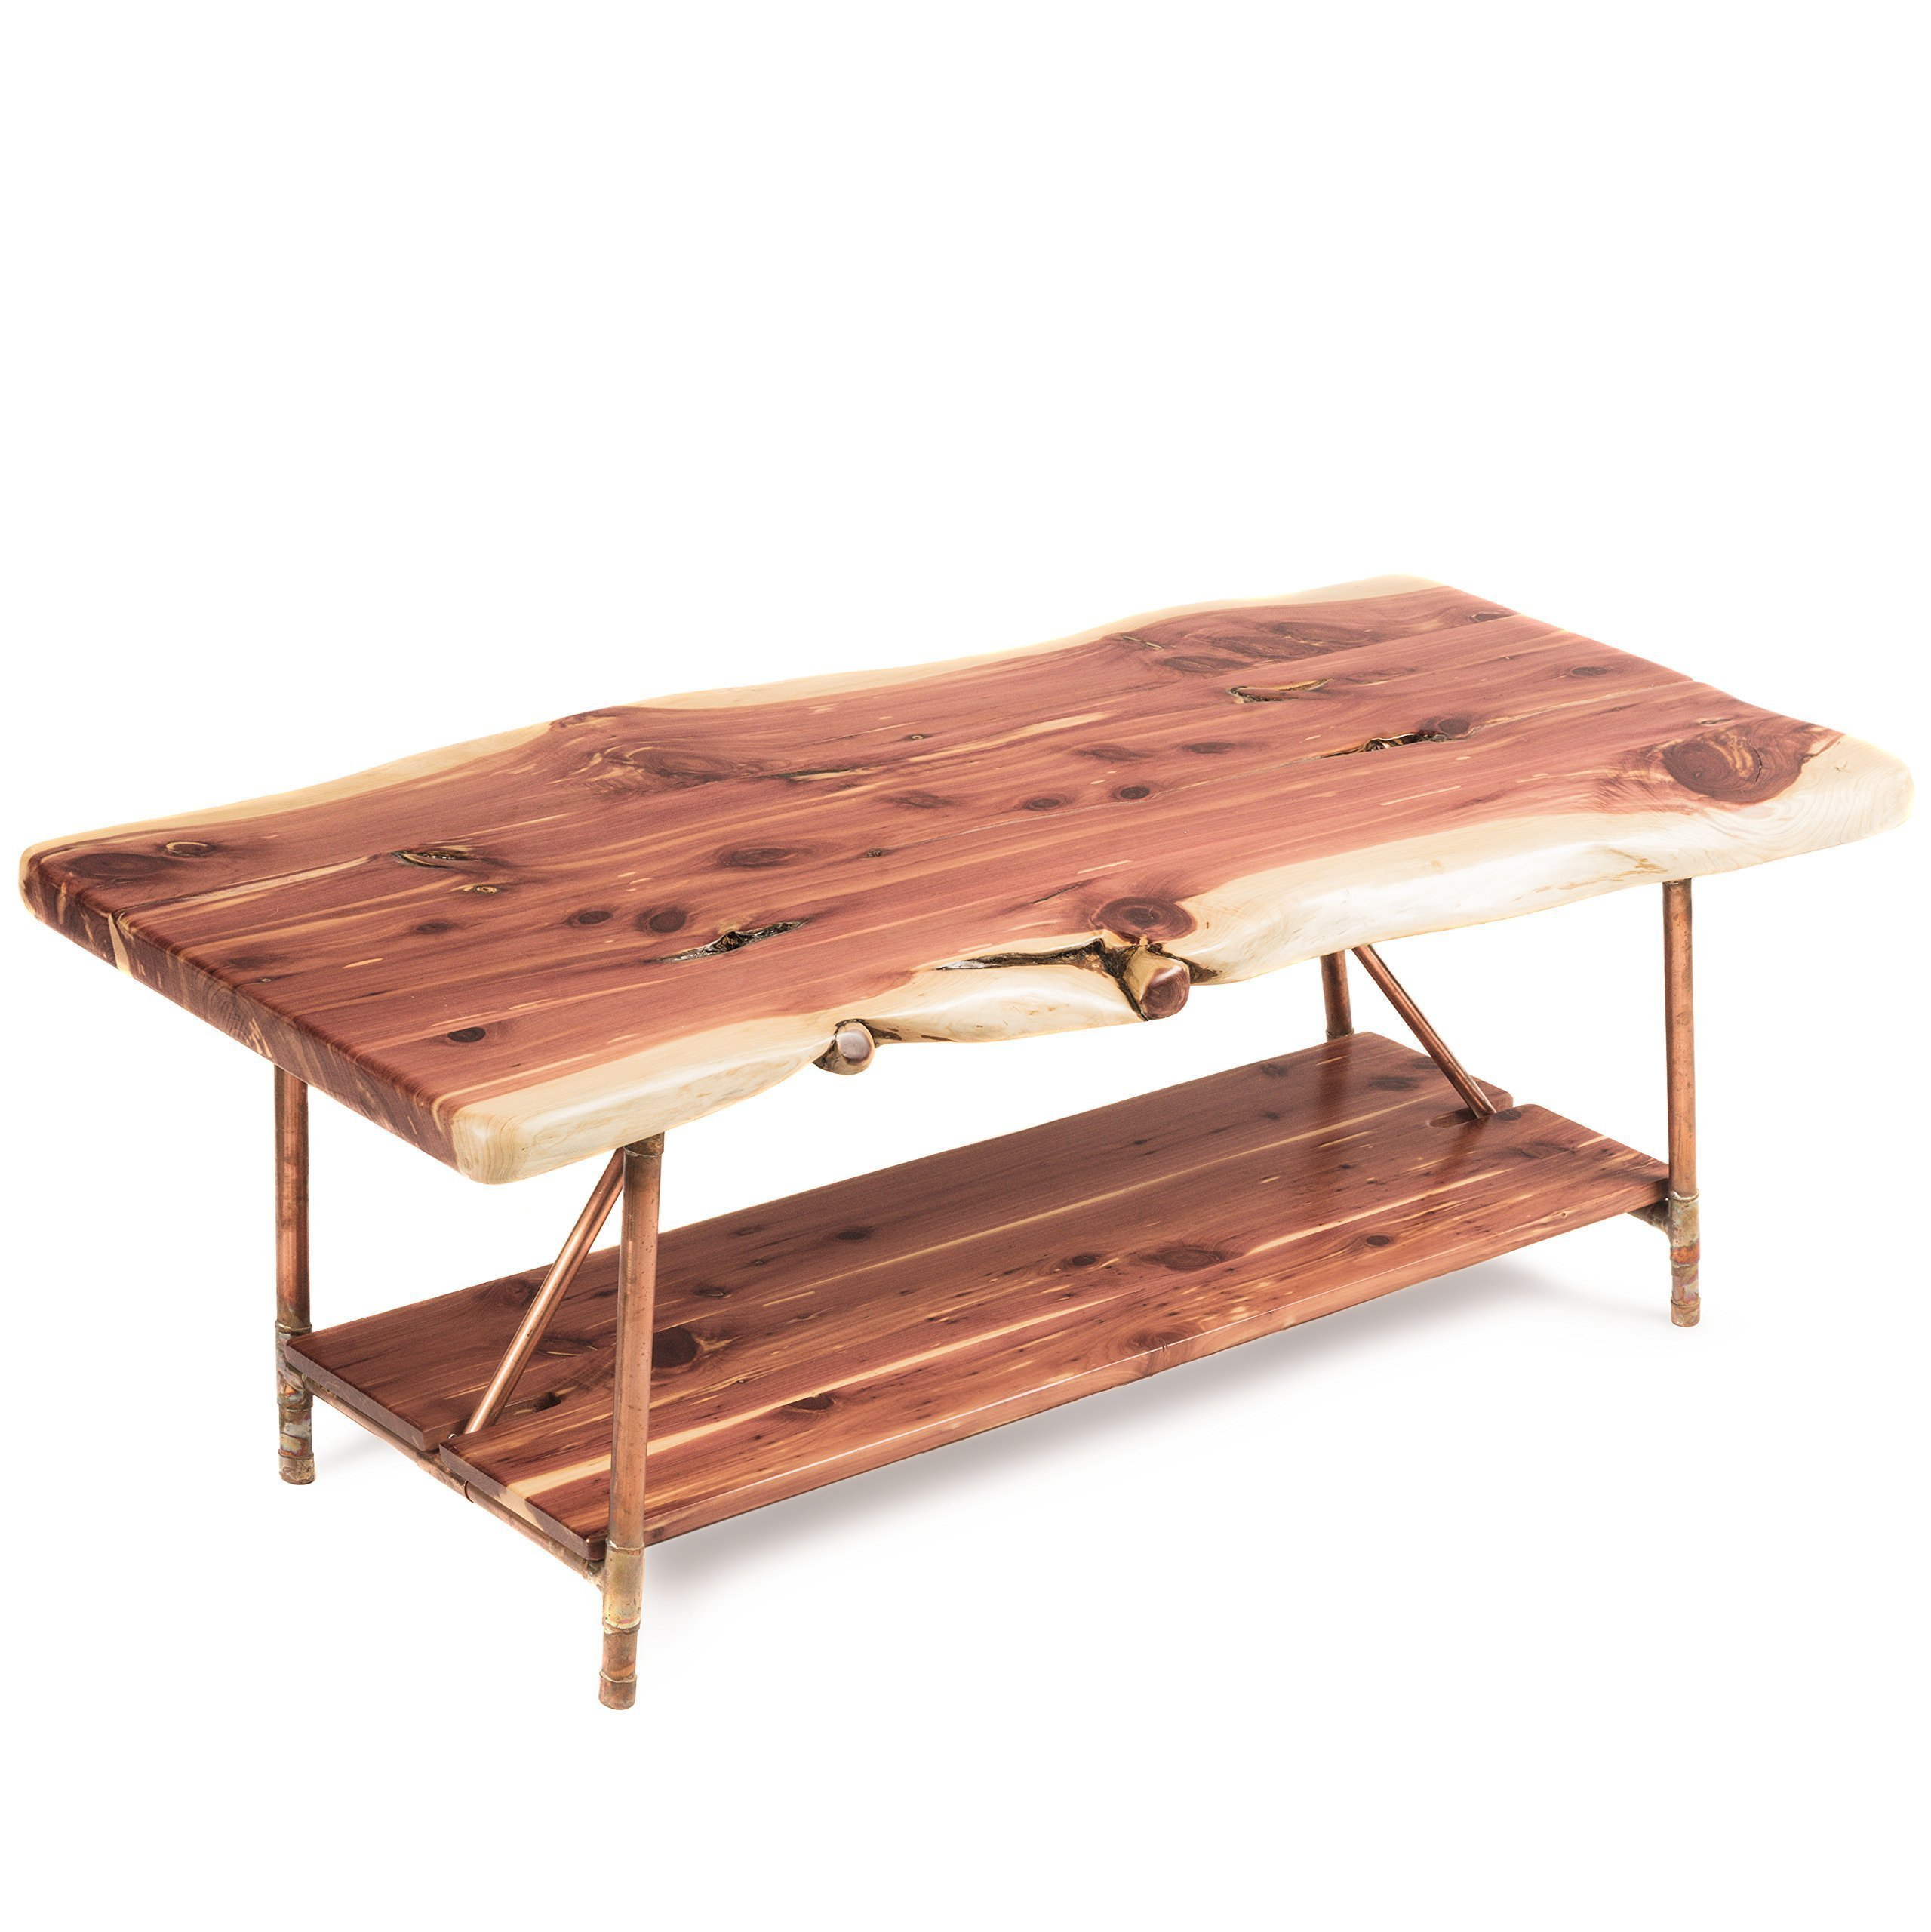 Niangua Furniture Live Edge Cedar Rustic Coffee Table with Copper Pipe Legs - 48'' x 23''